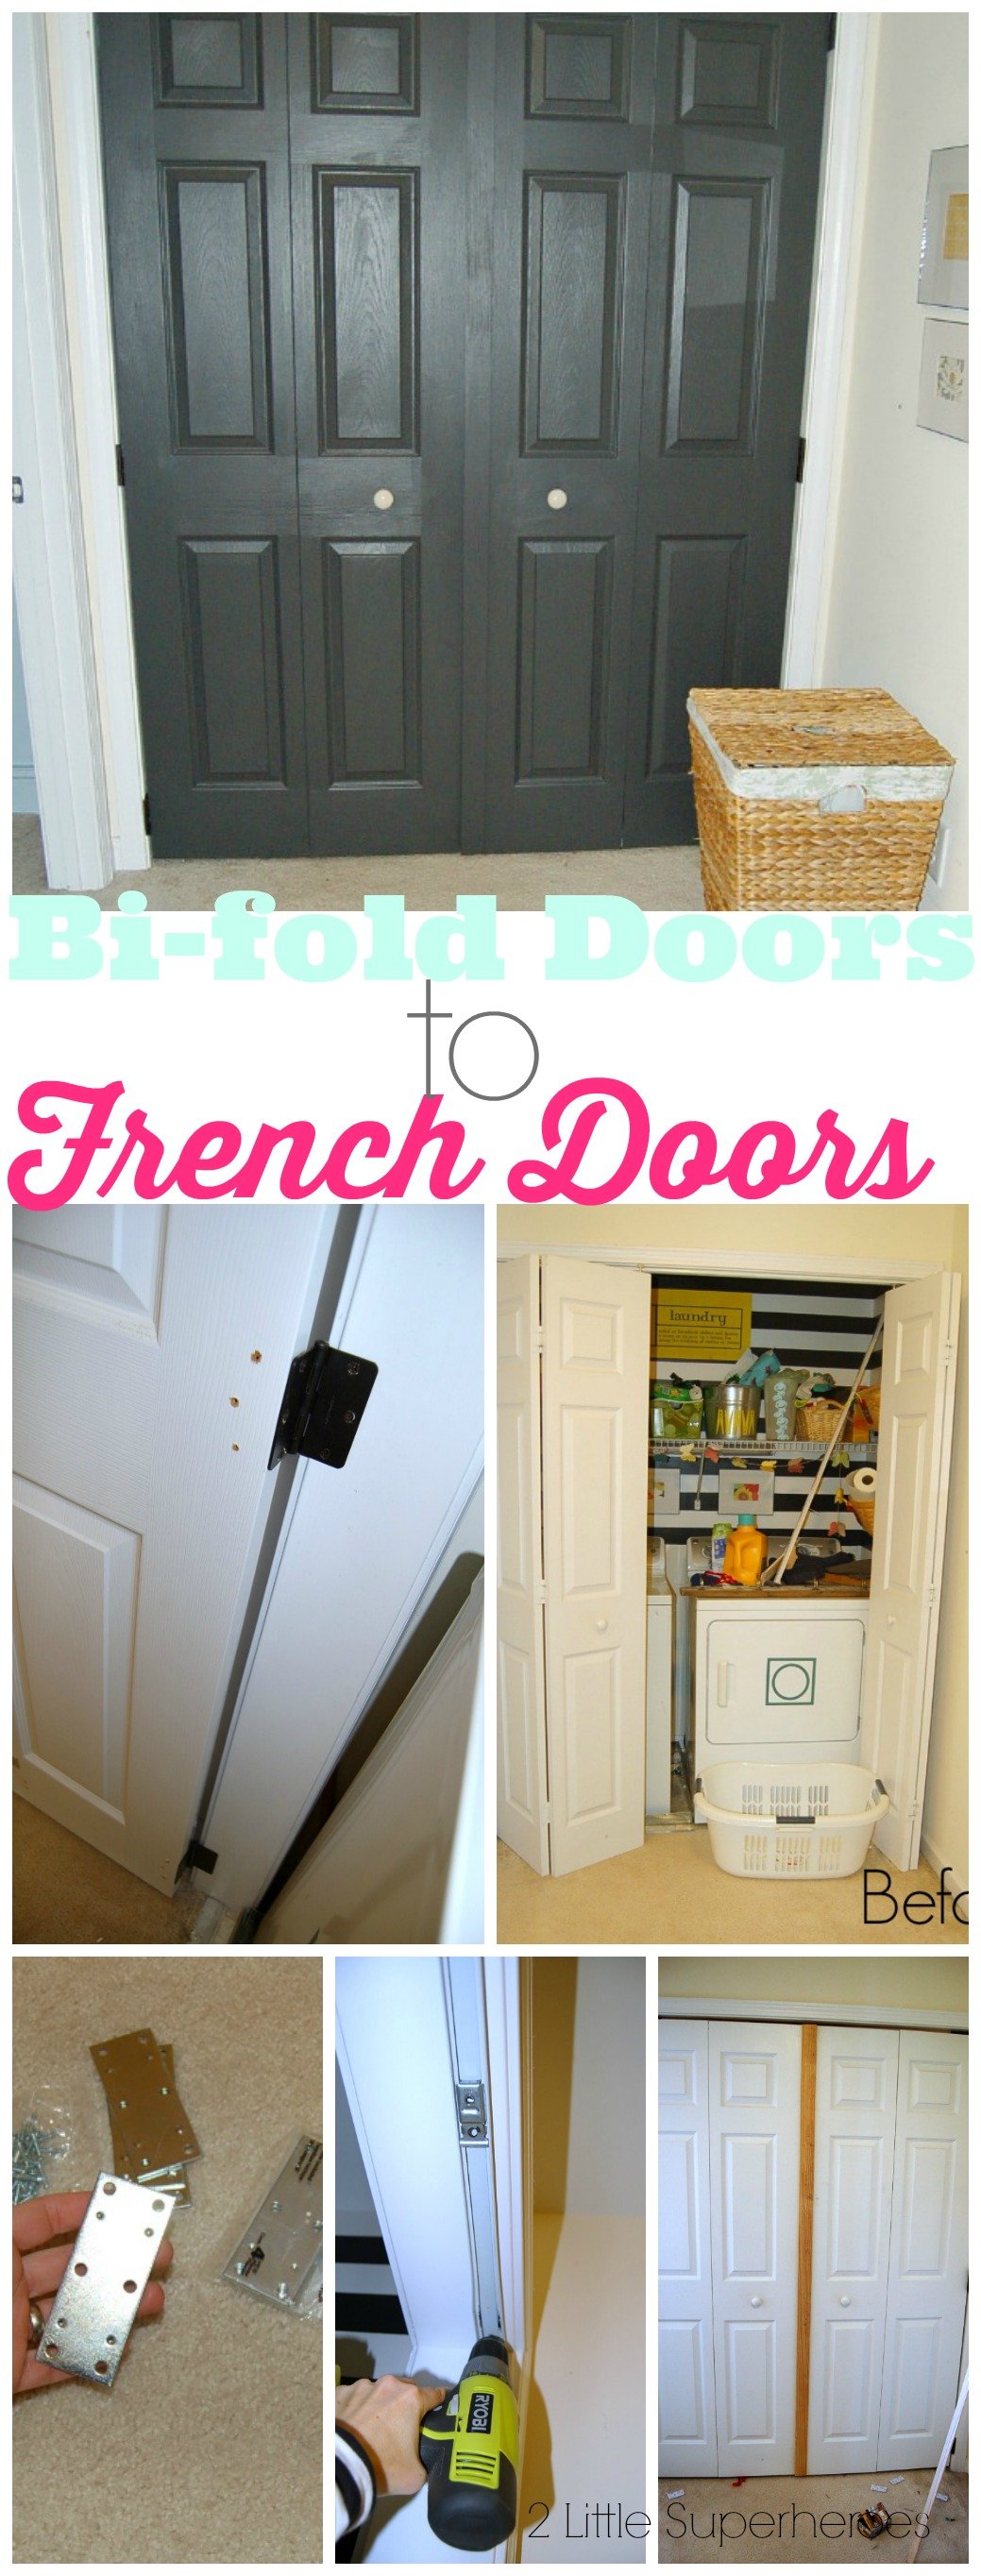 diy-bifold-doors